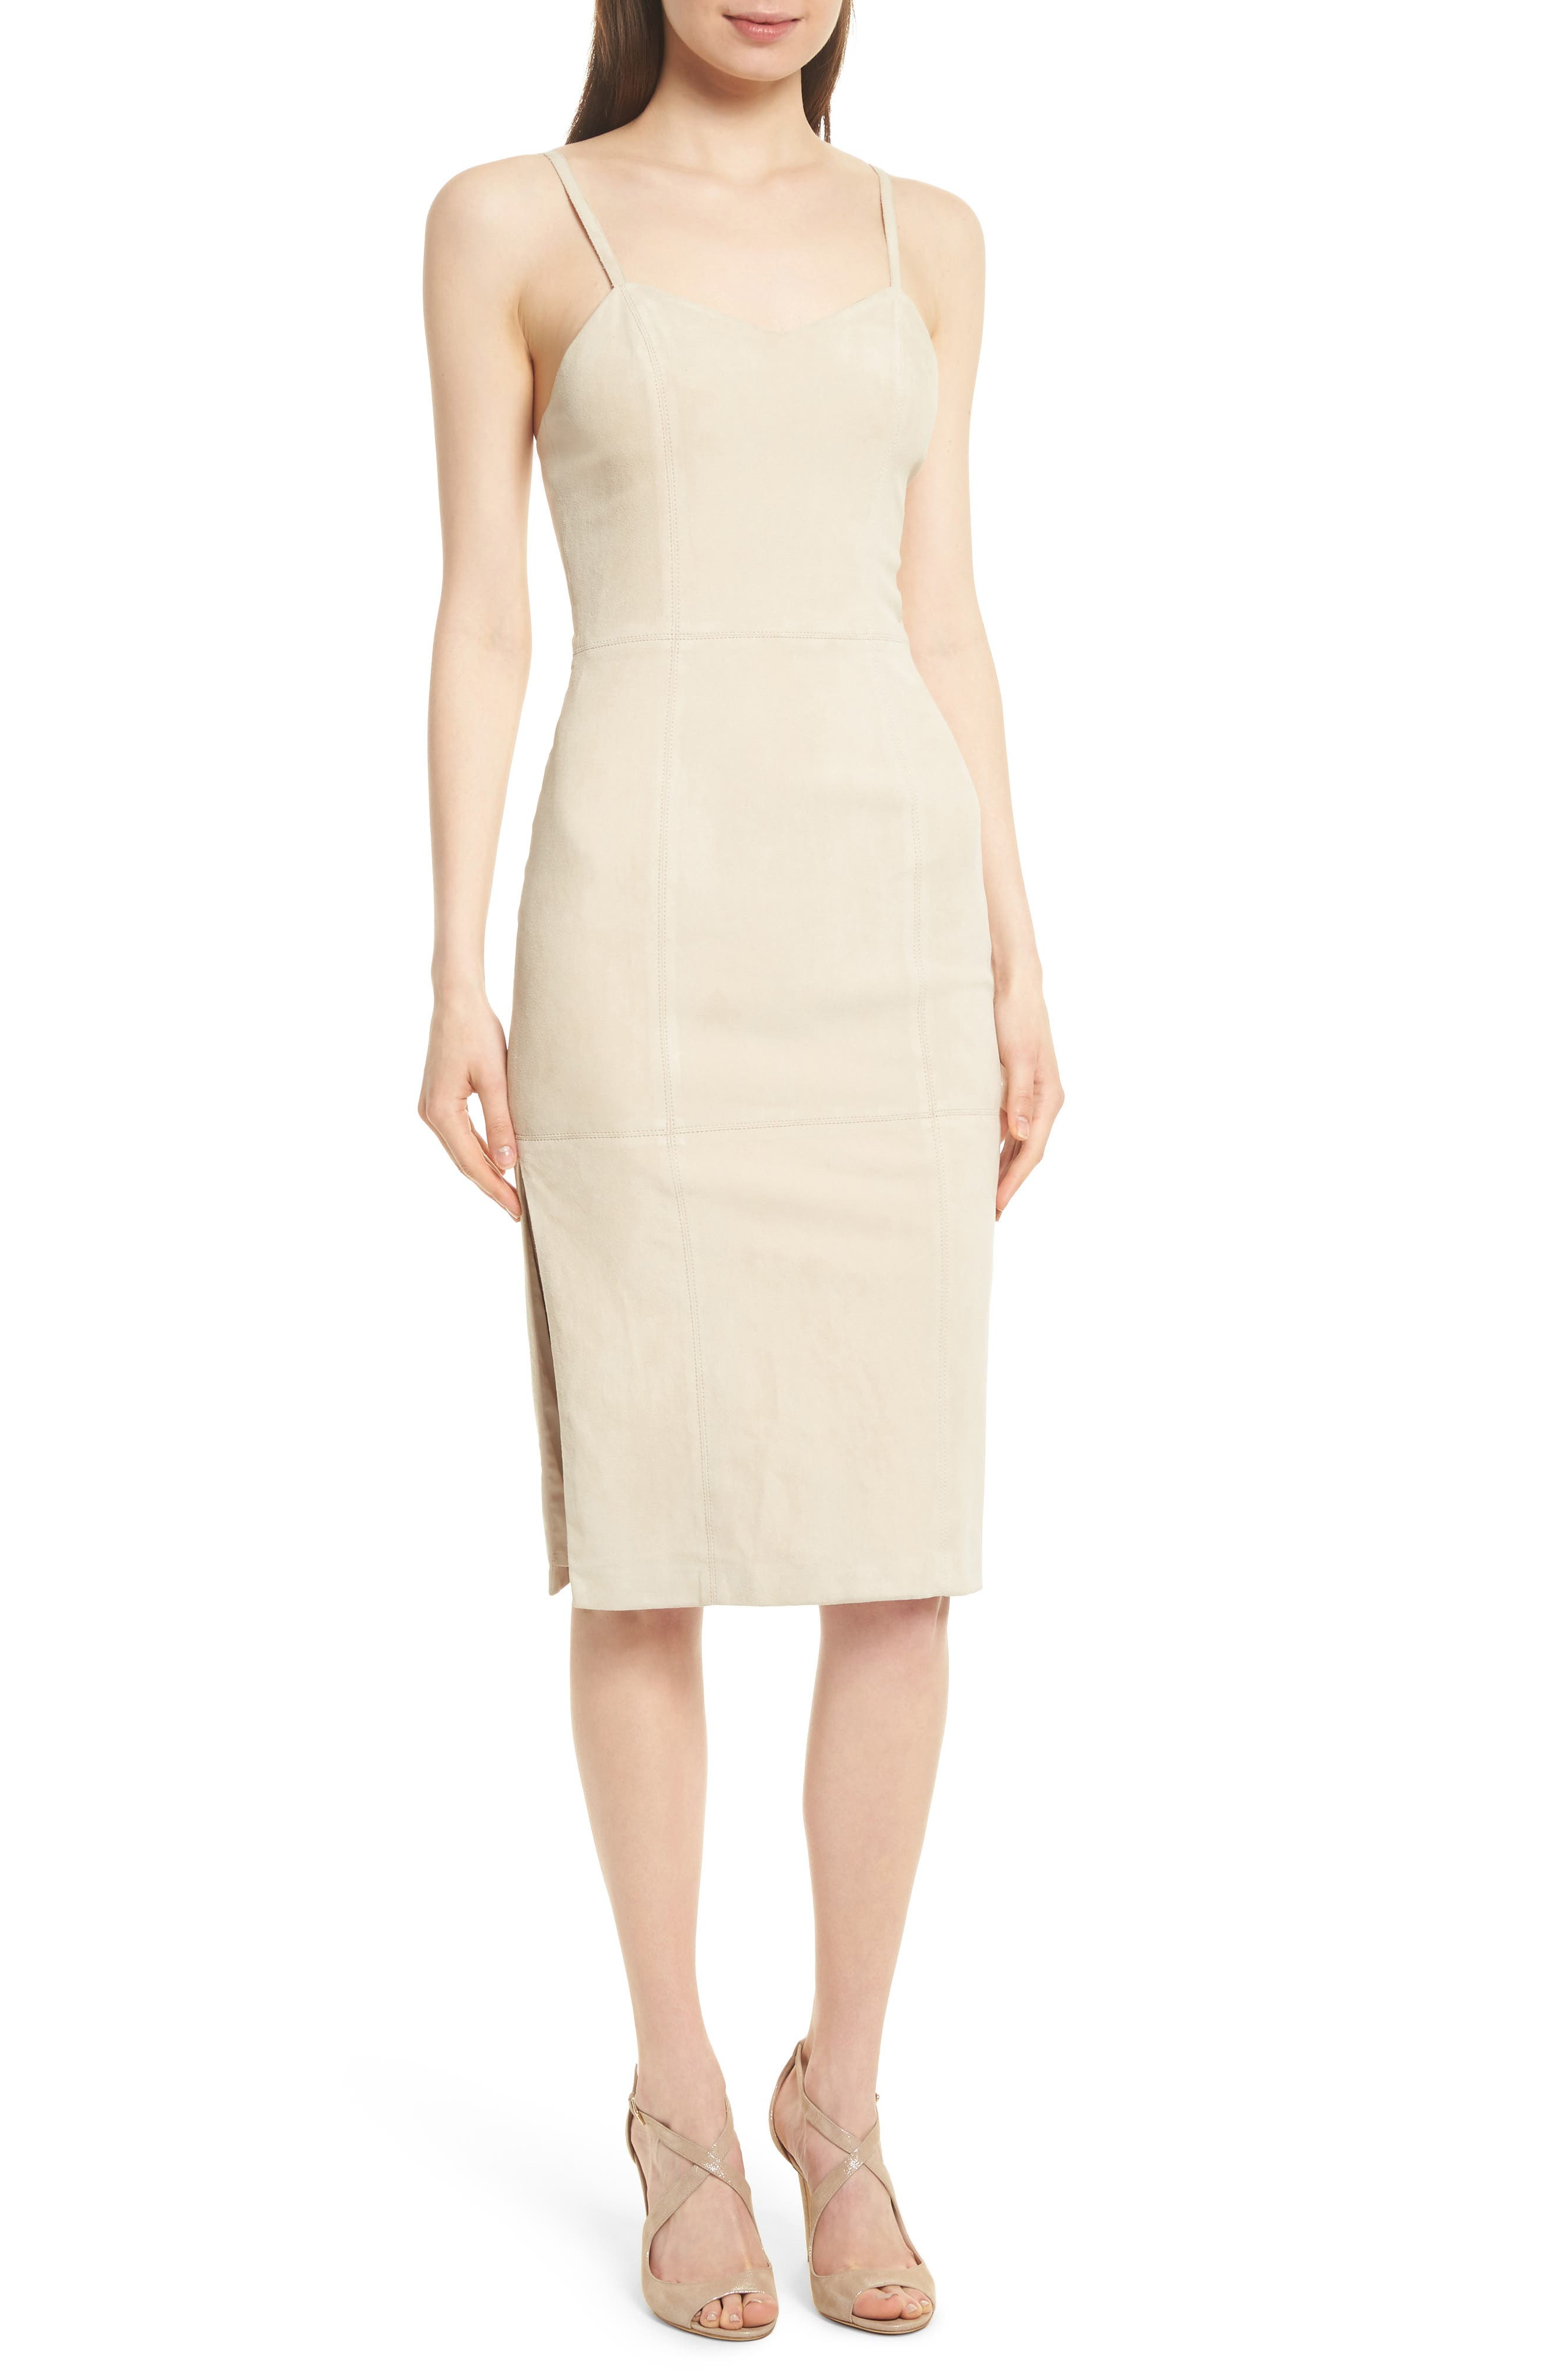 Rochell Suede Sheath Dress,                             Main thumbnail 1, color,                             199